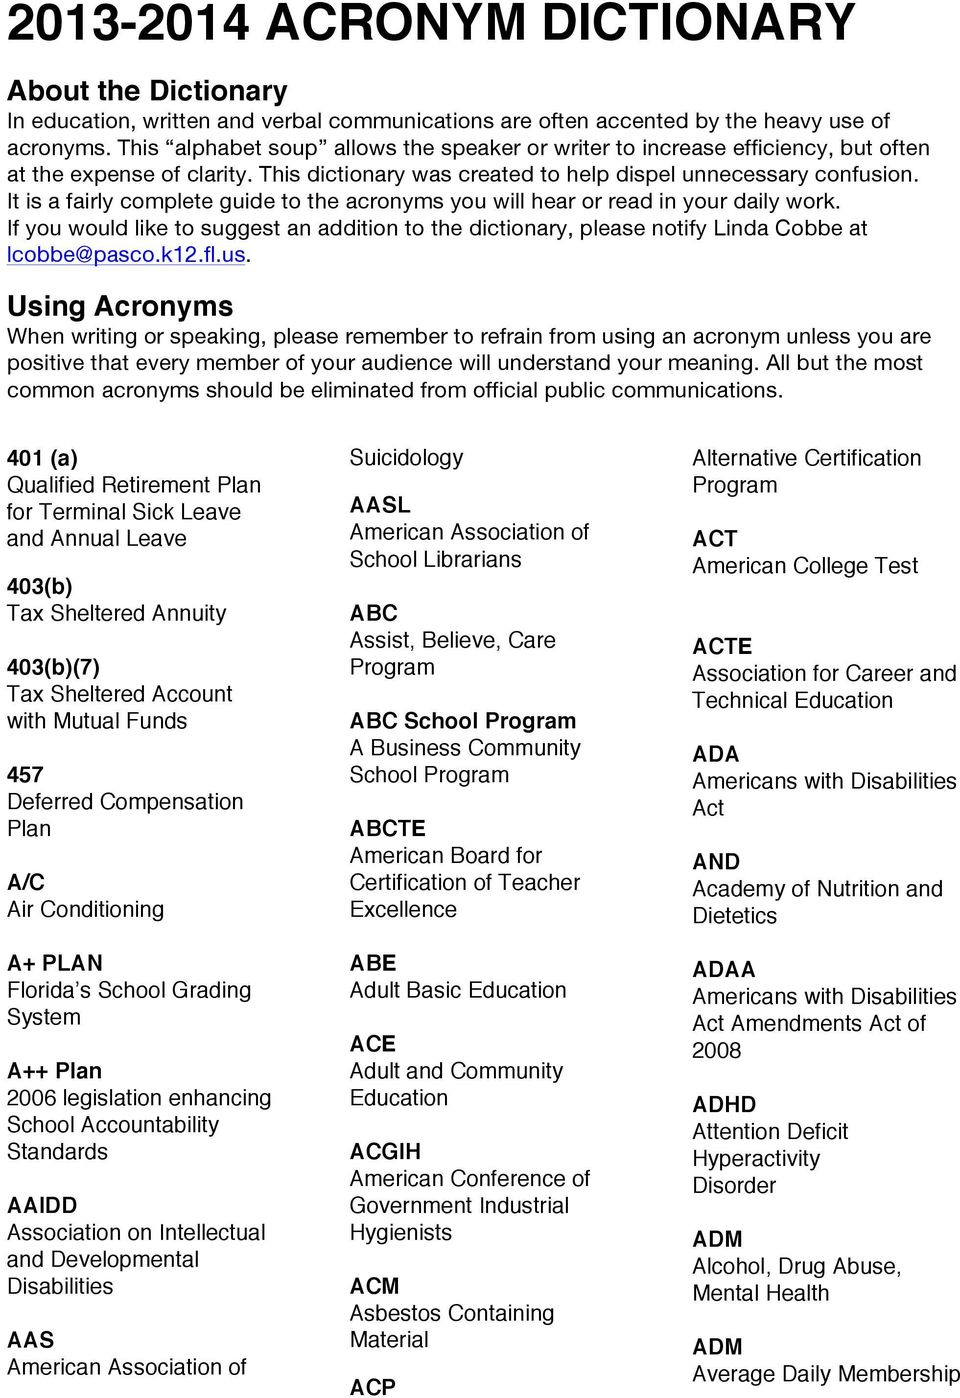 It is a fairly complete guide to the acronyms you will hear or read in your daily work. If you would like to suggest an addition to the dictionary, please notify Linda Cobbe at lcobbe@pasco.k12.fl.us.